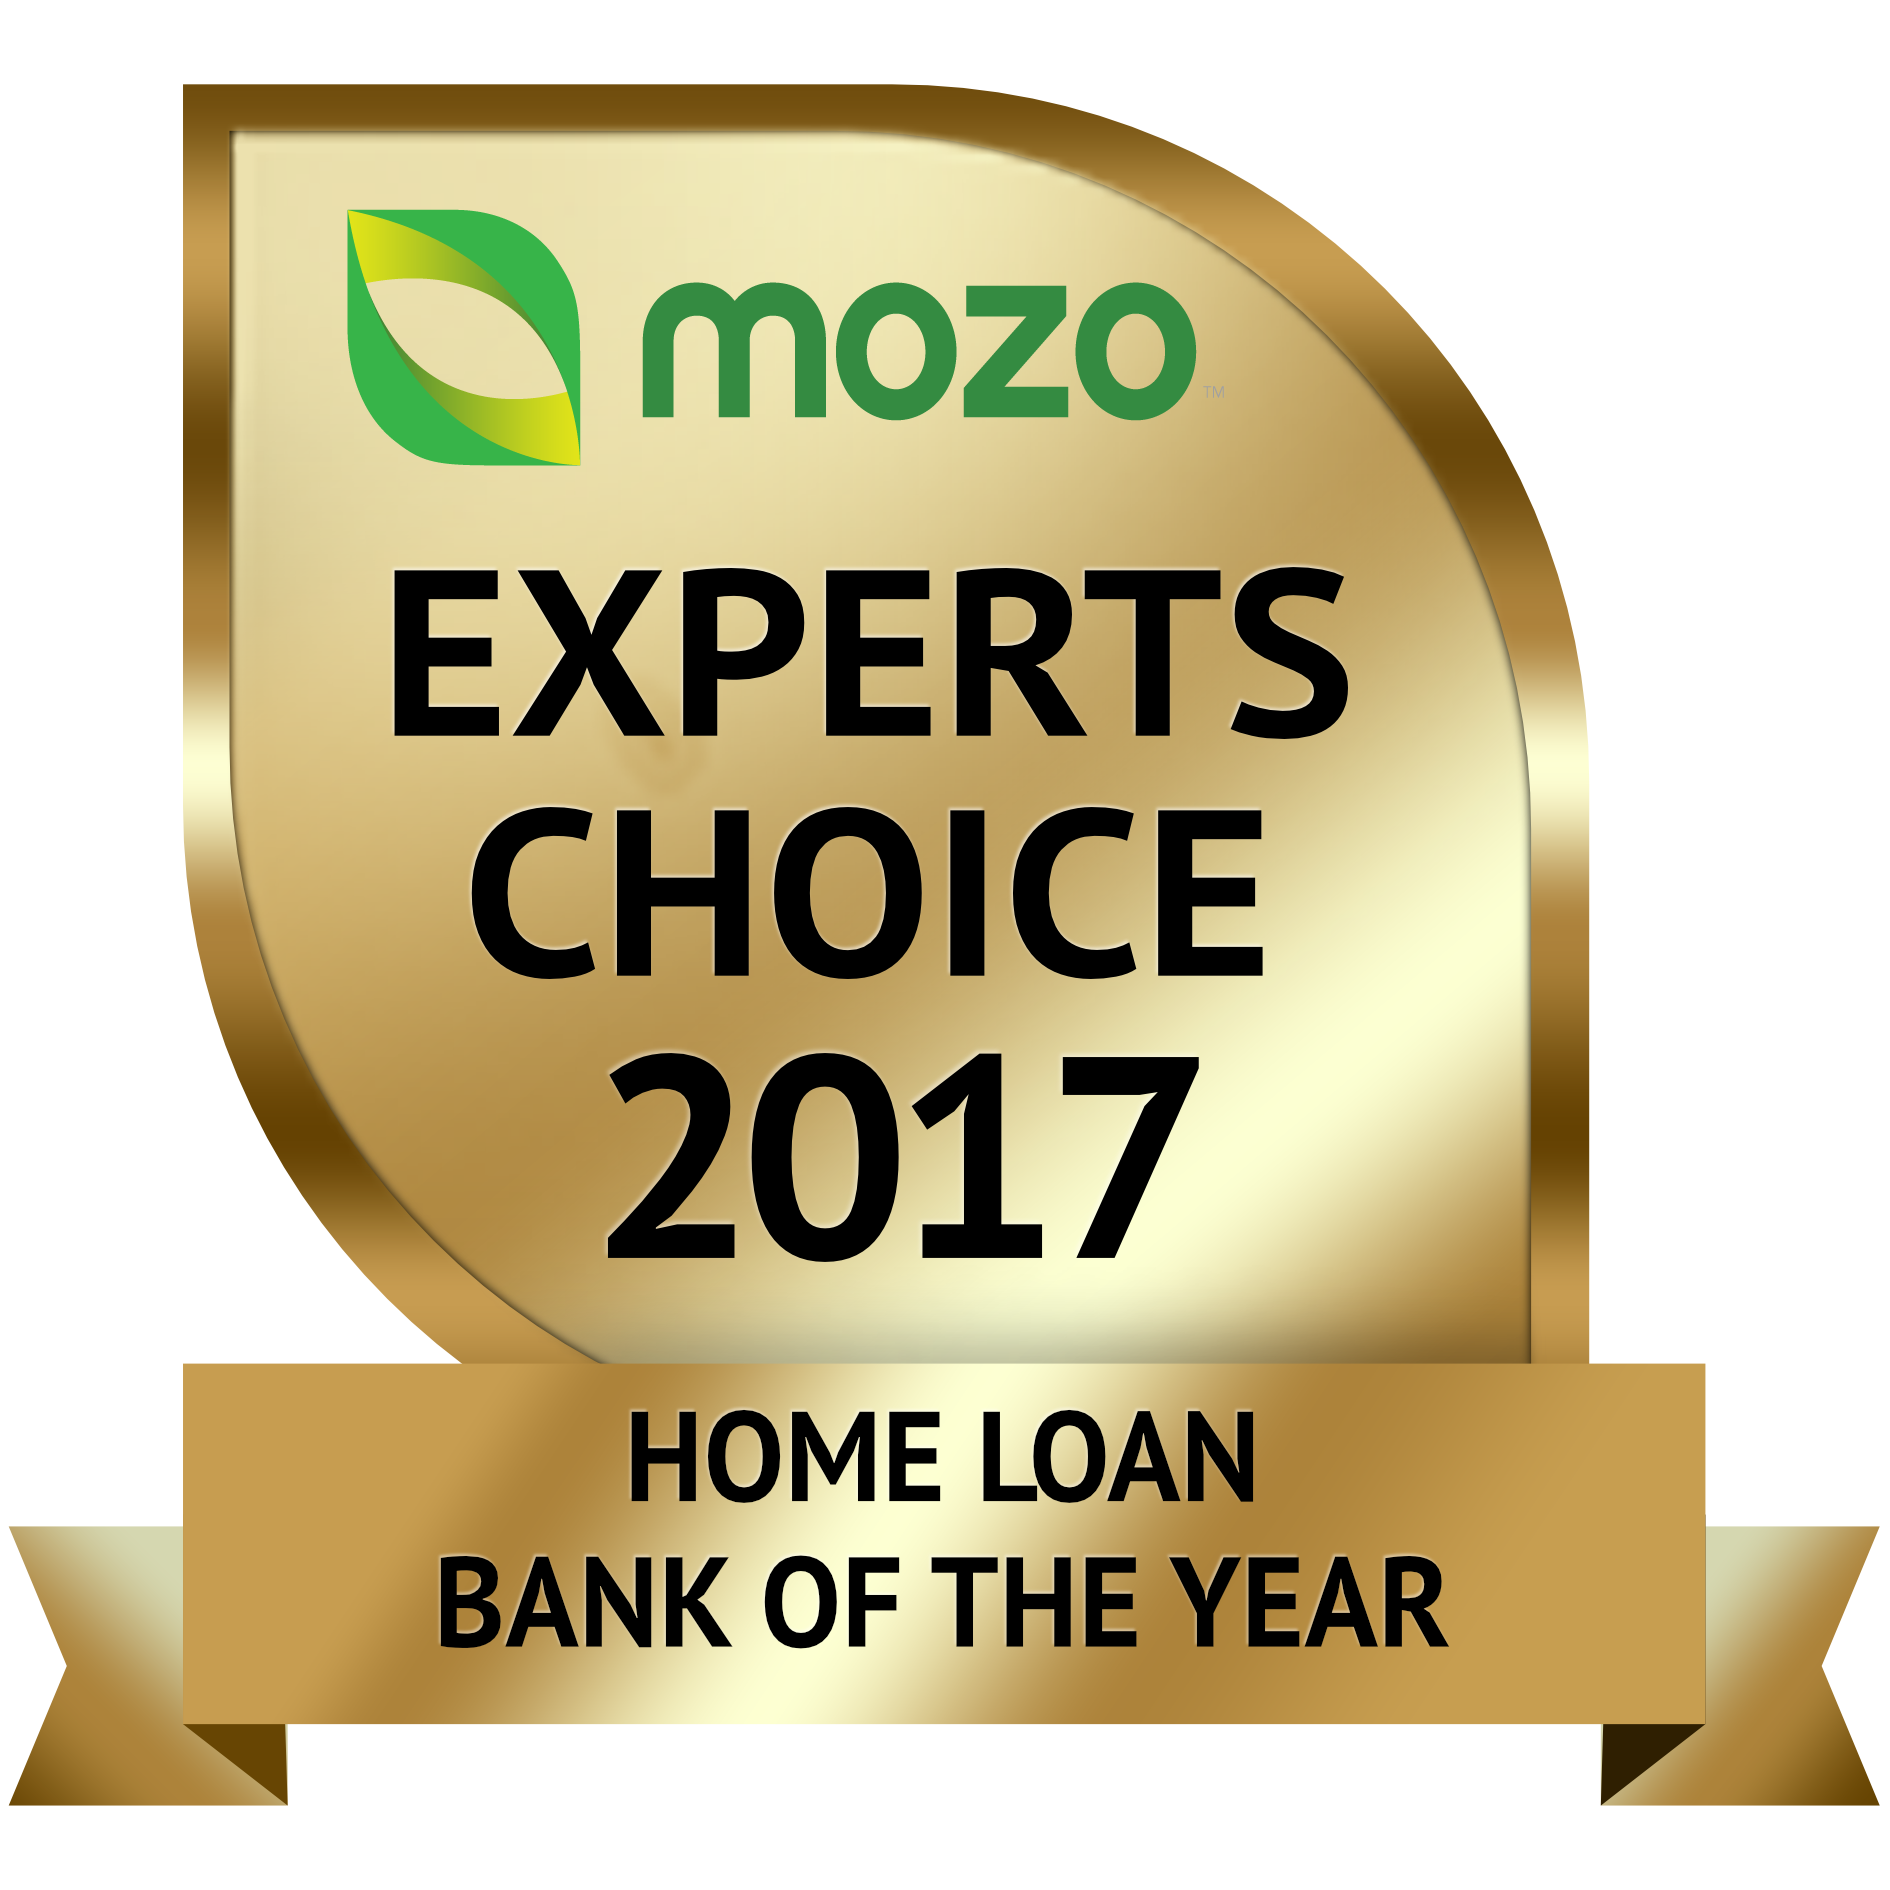 home-loan-bank-of-the-year-2017